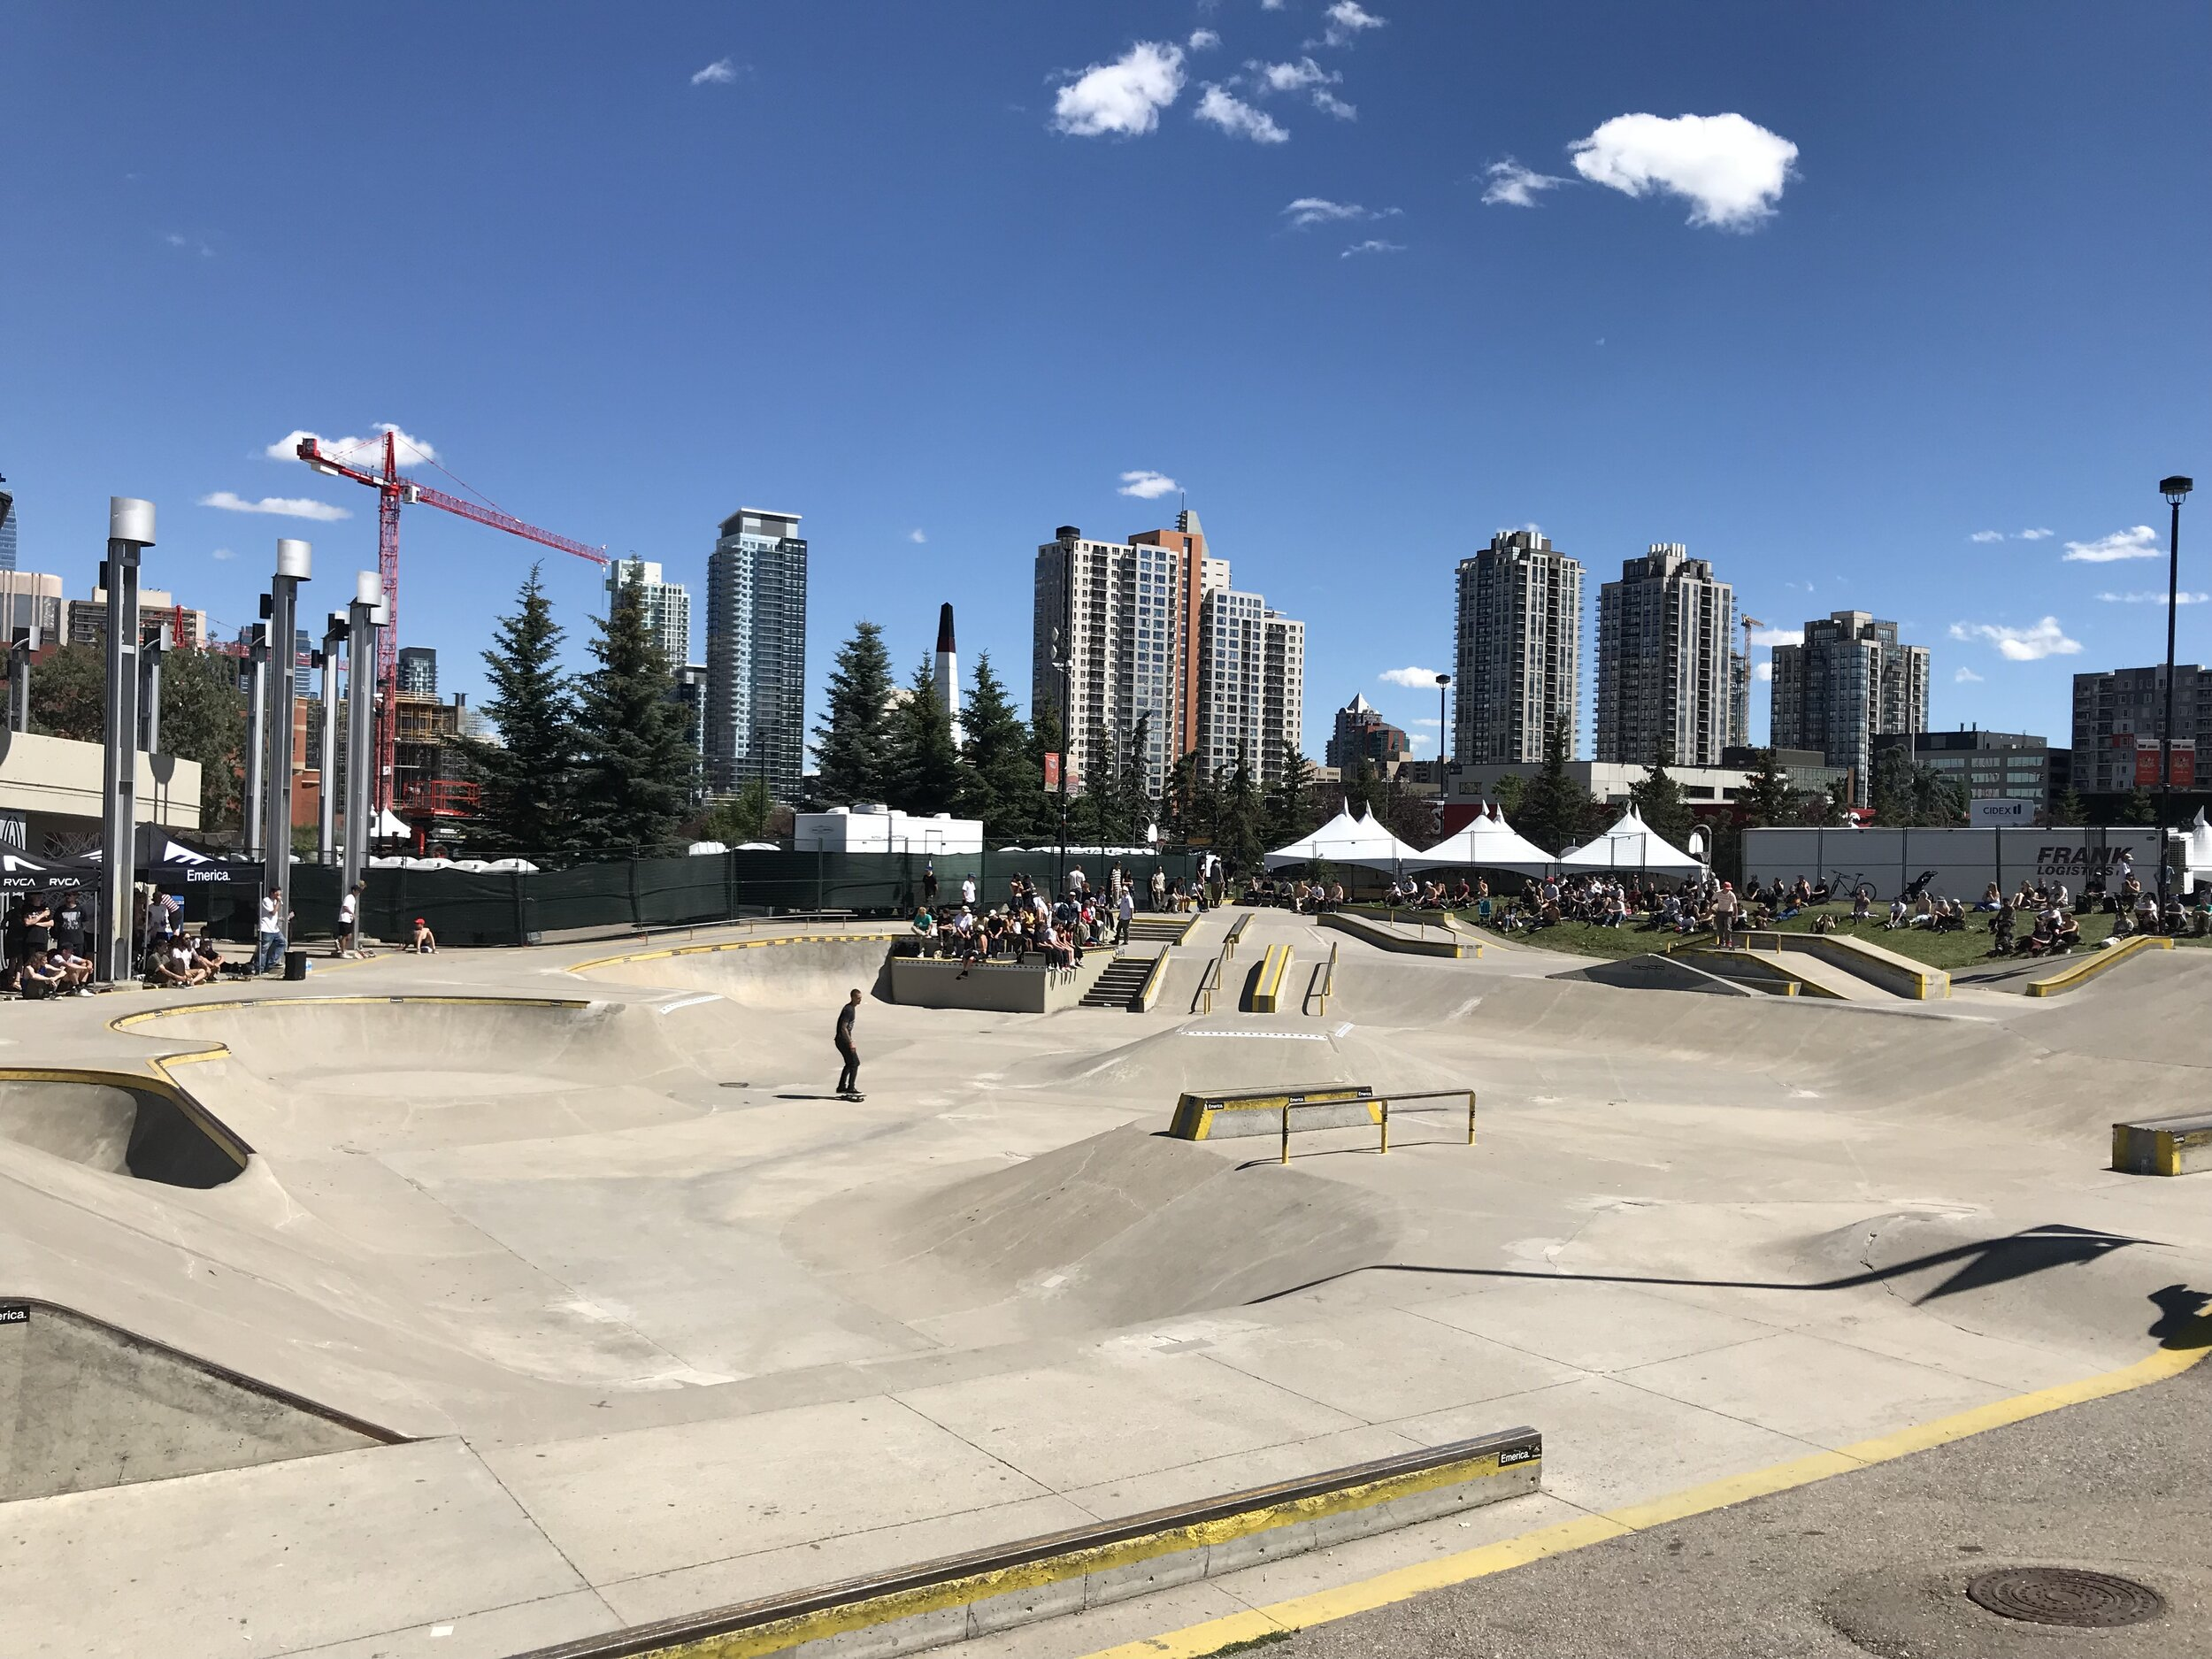 And just across the street is Shaw Millennium Park, a popular festival site and home to one of the largest public skateparks in the world - at 75,000 square feet. Other amenities include basketball and beach volleyball courts.